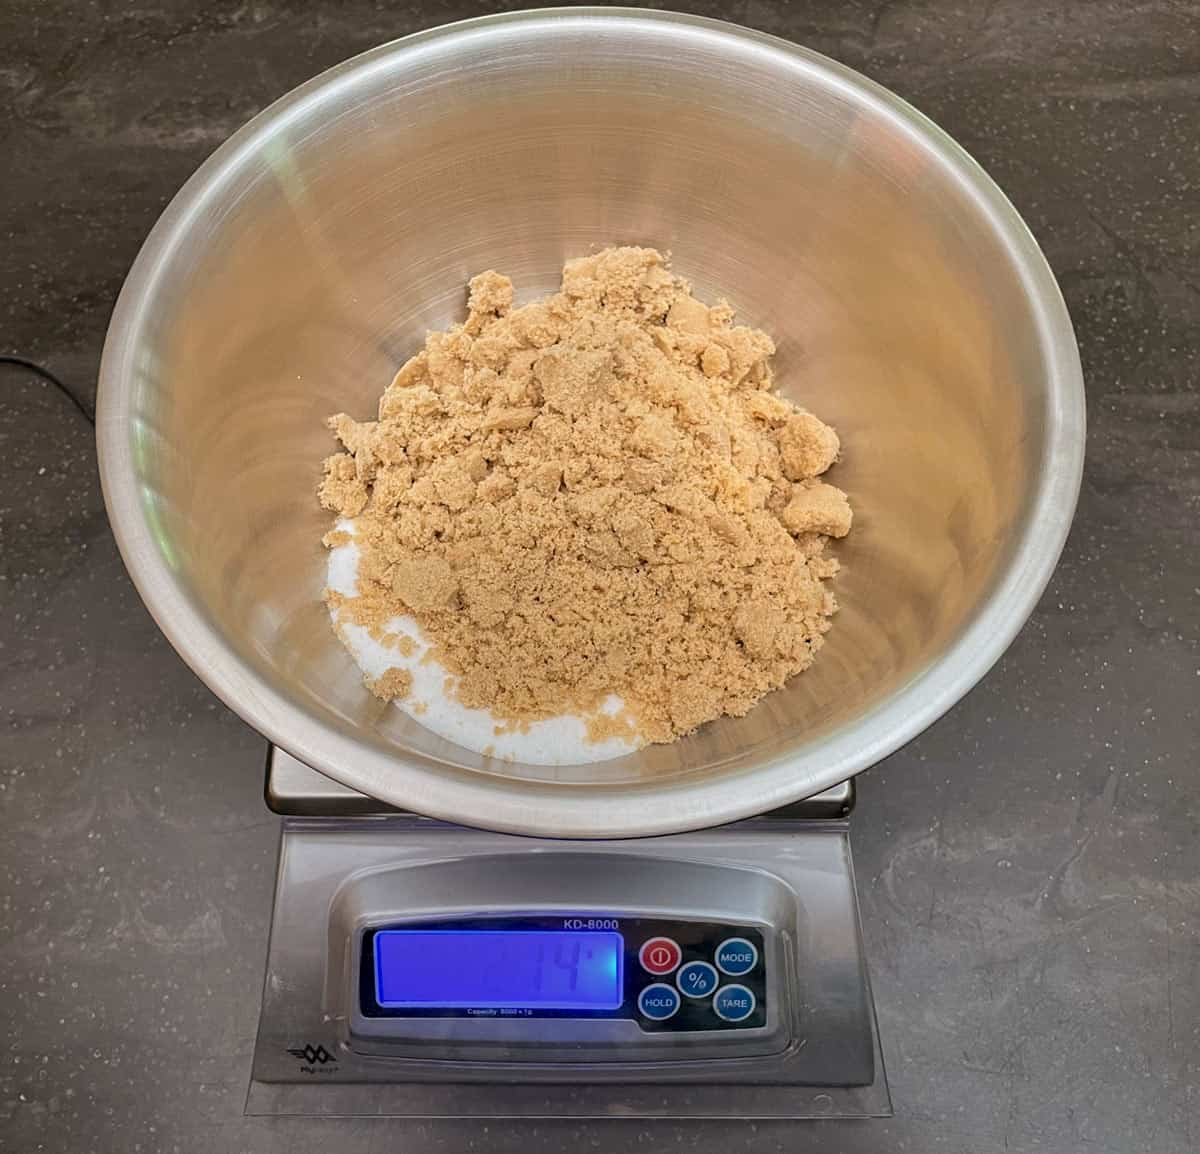 Weighing white and brown sugars on a scale.